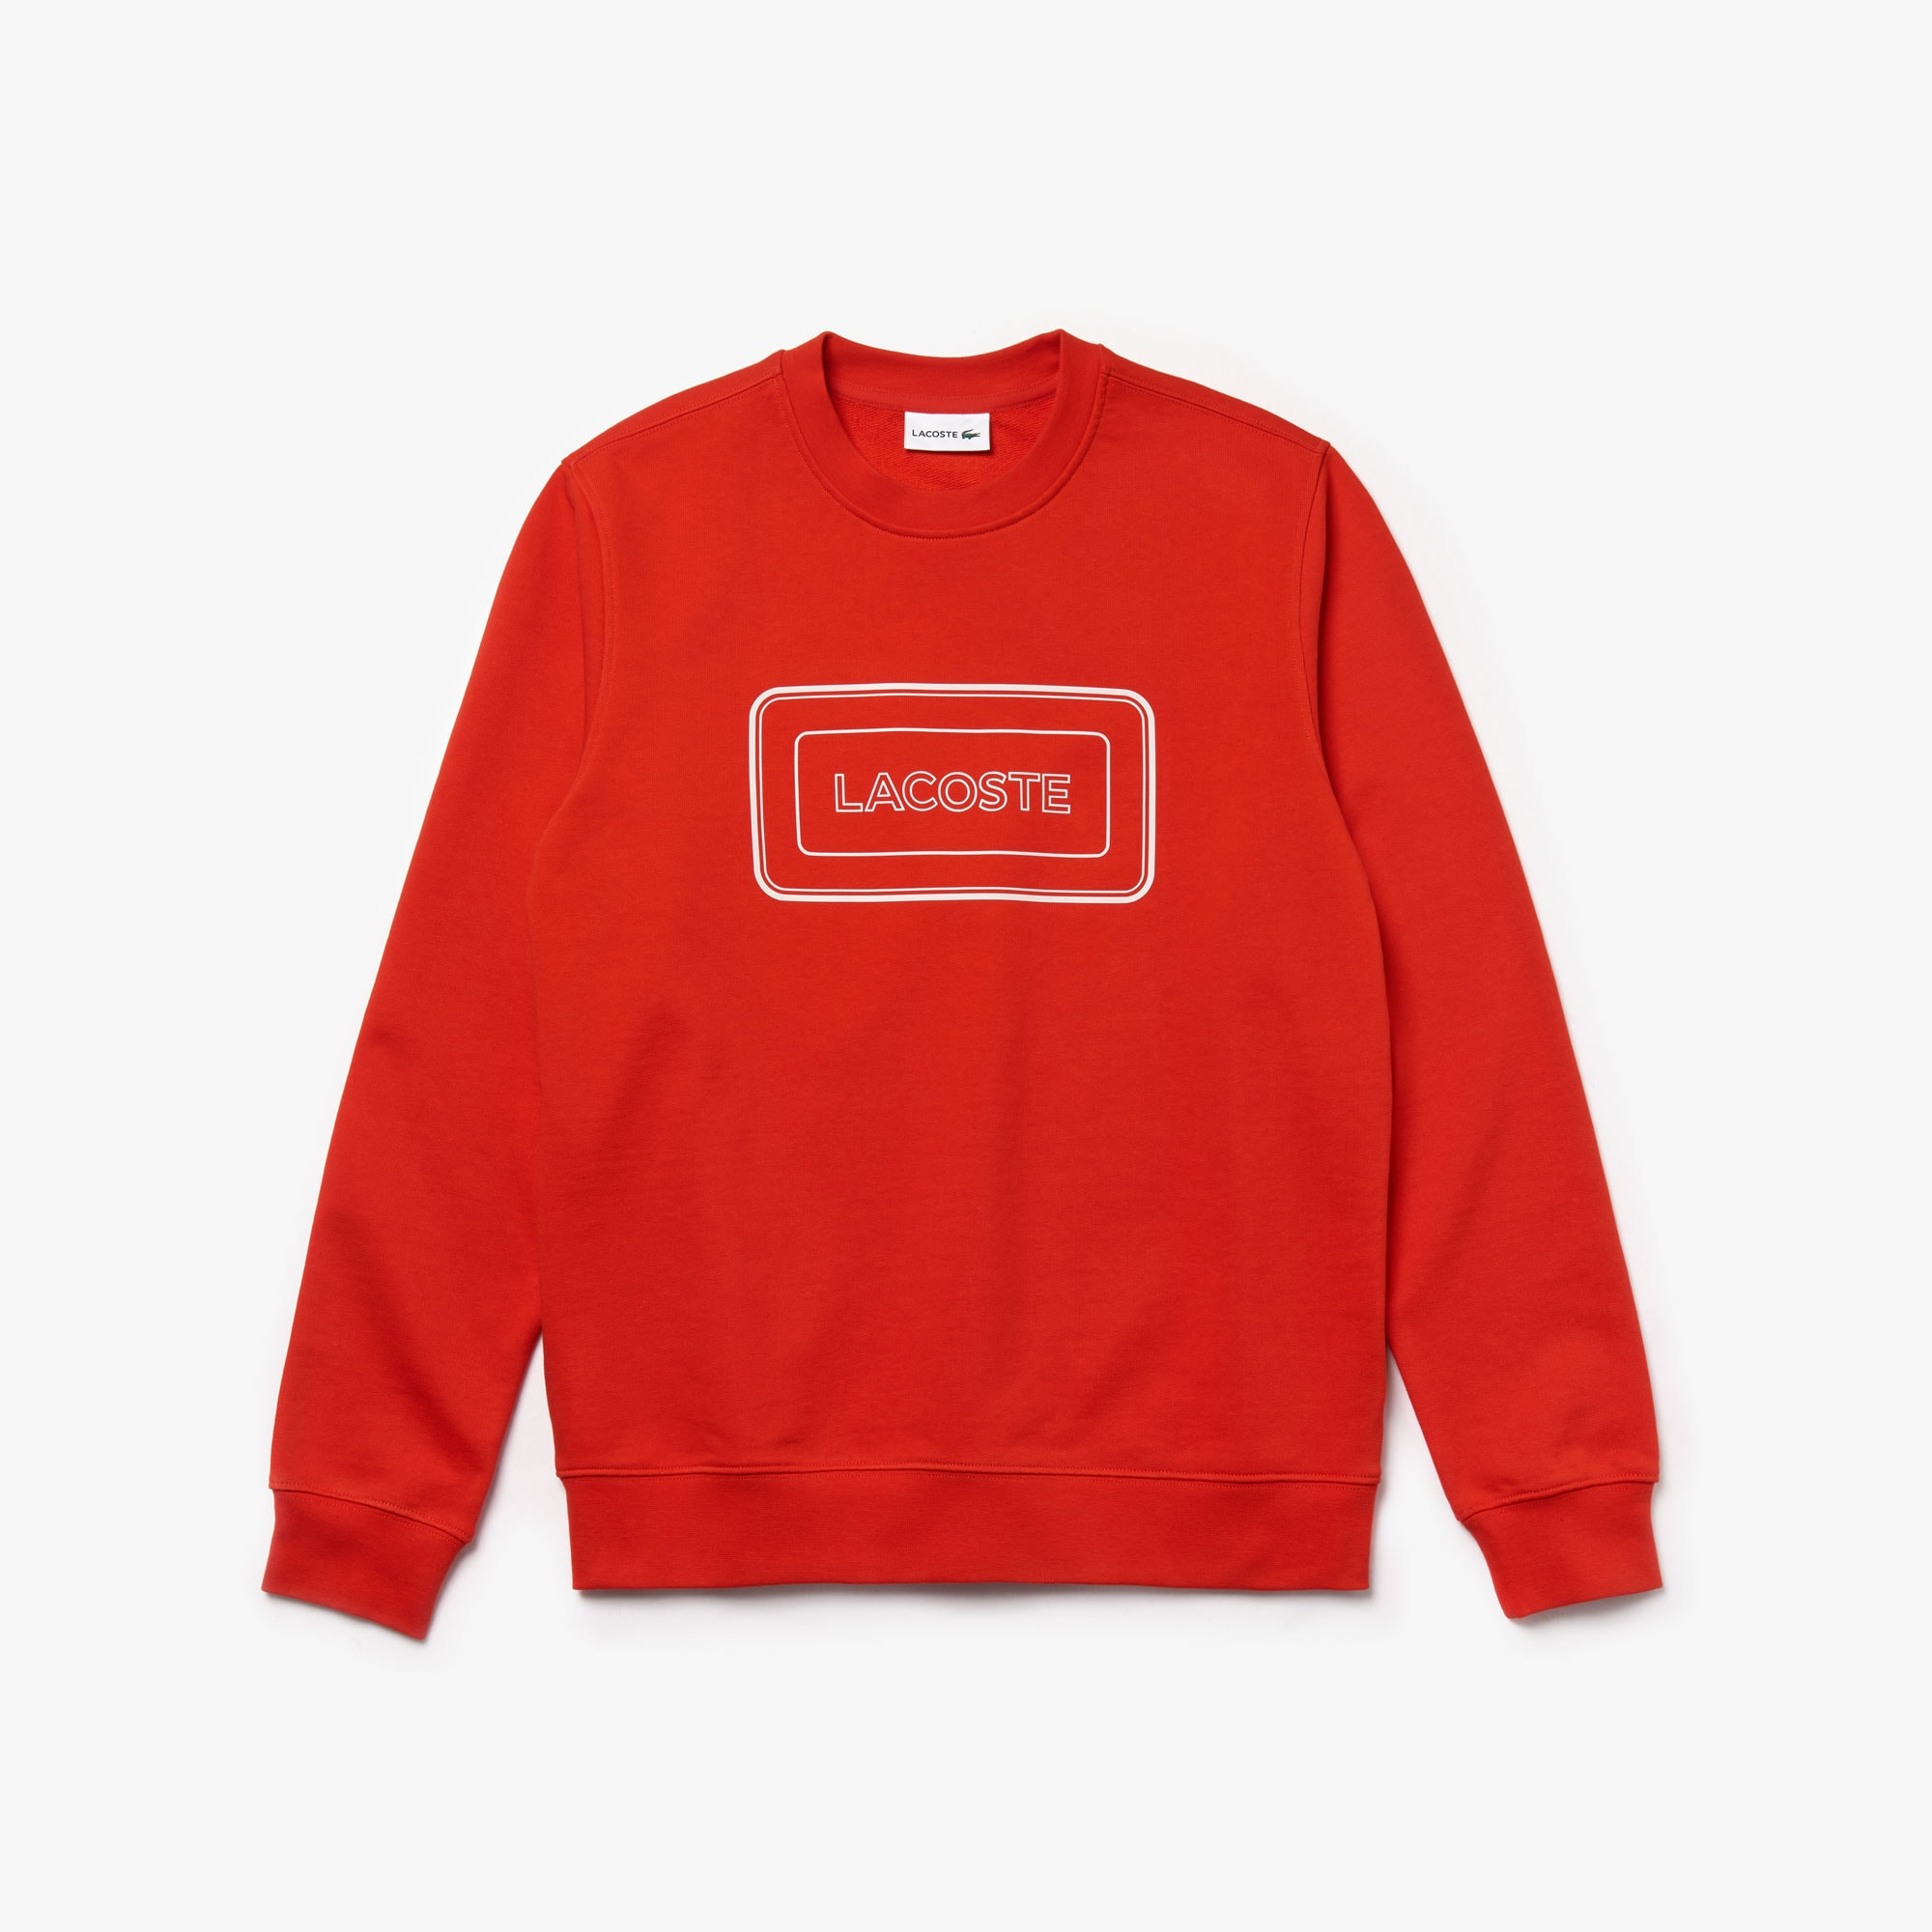 Men's Reflective Branding Crew Neck Sweatshirt